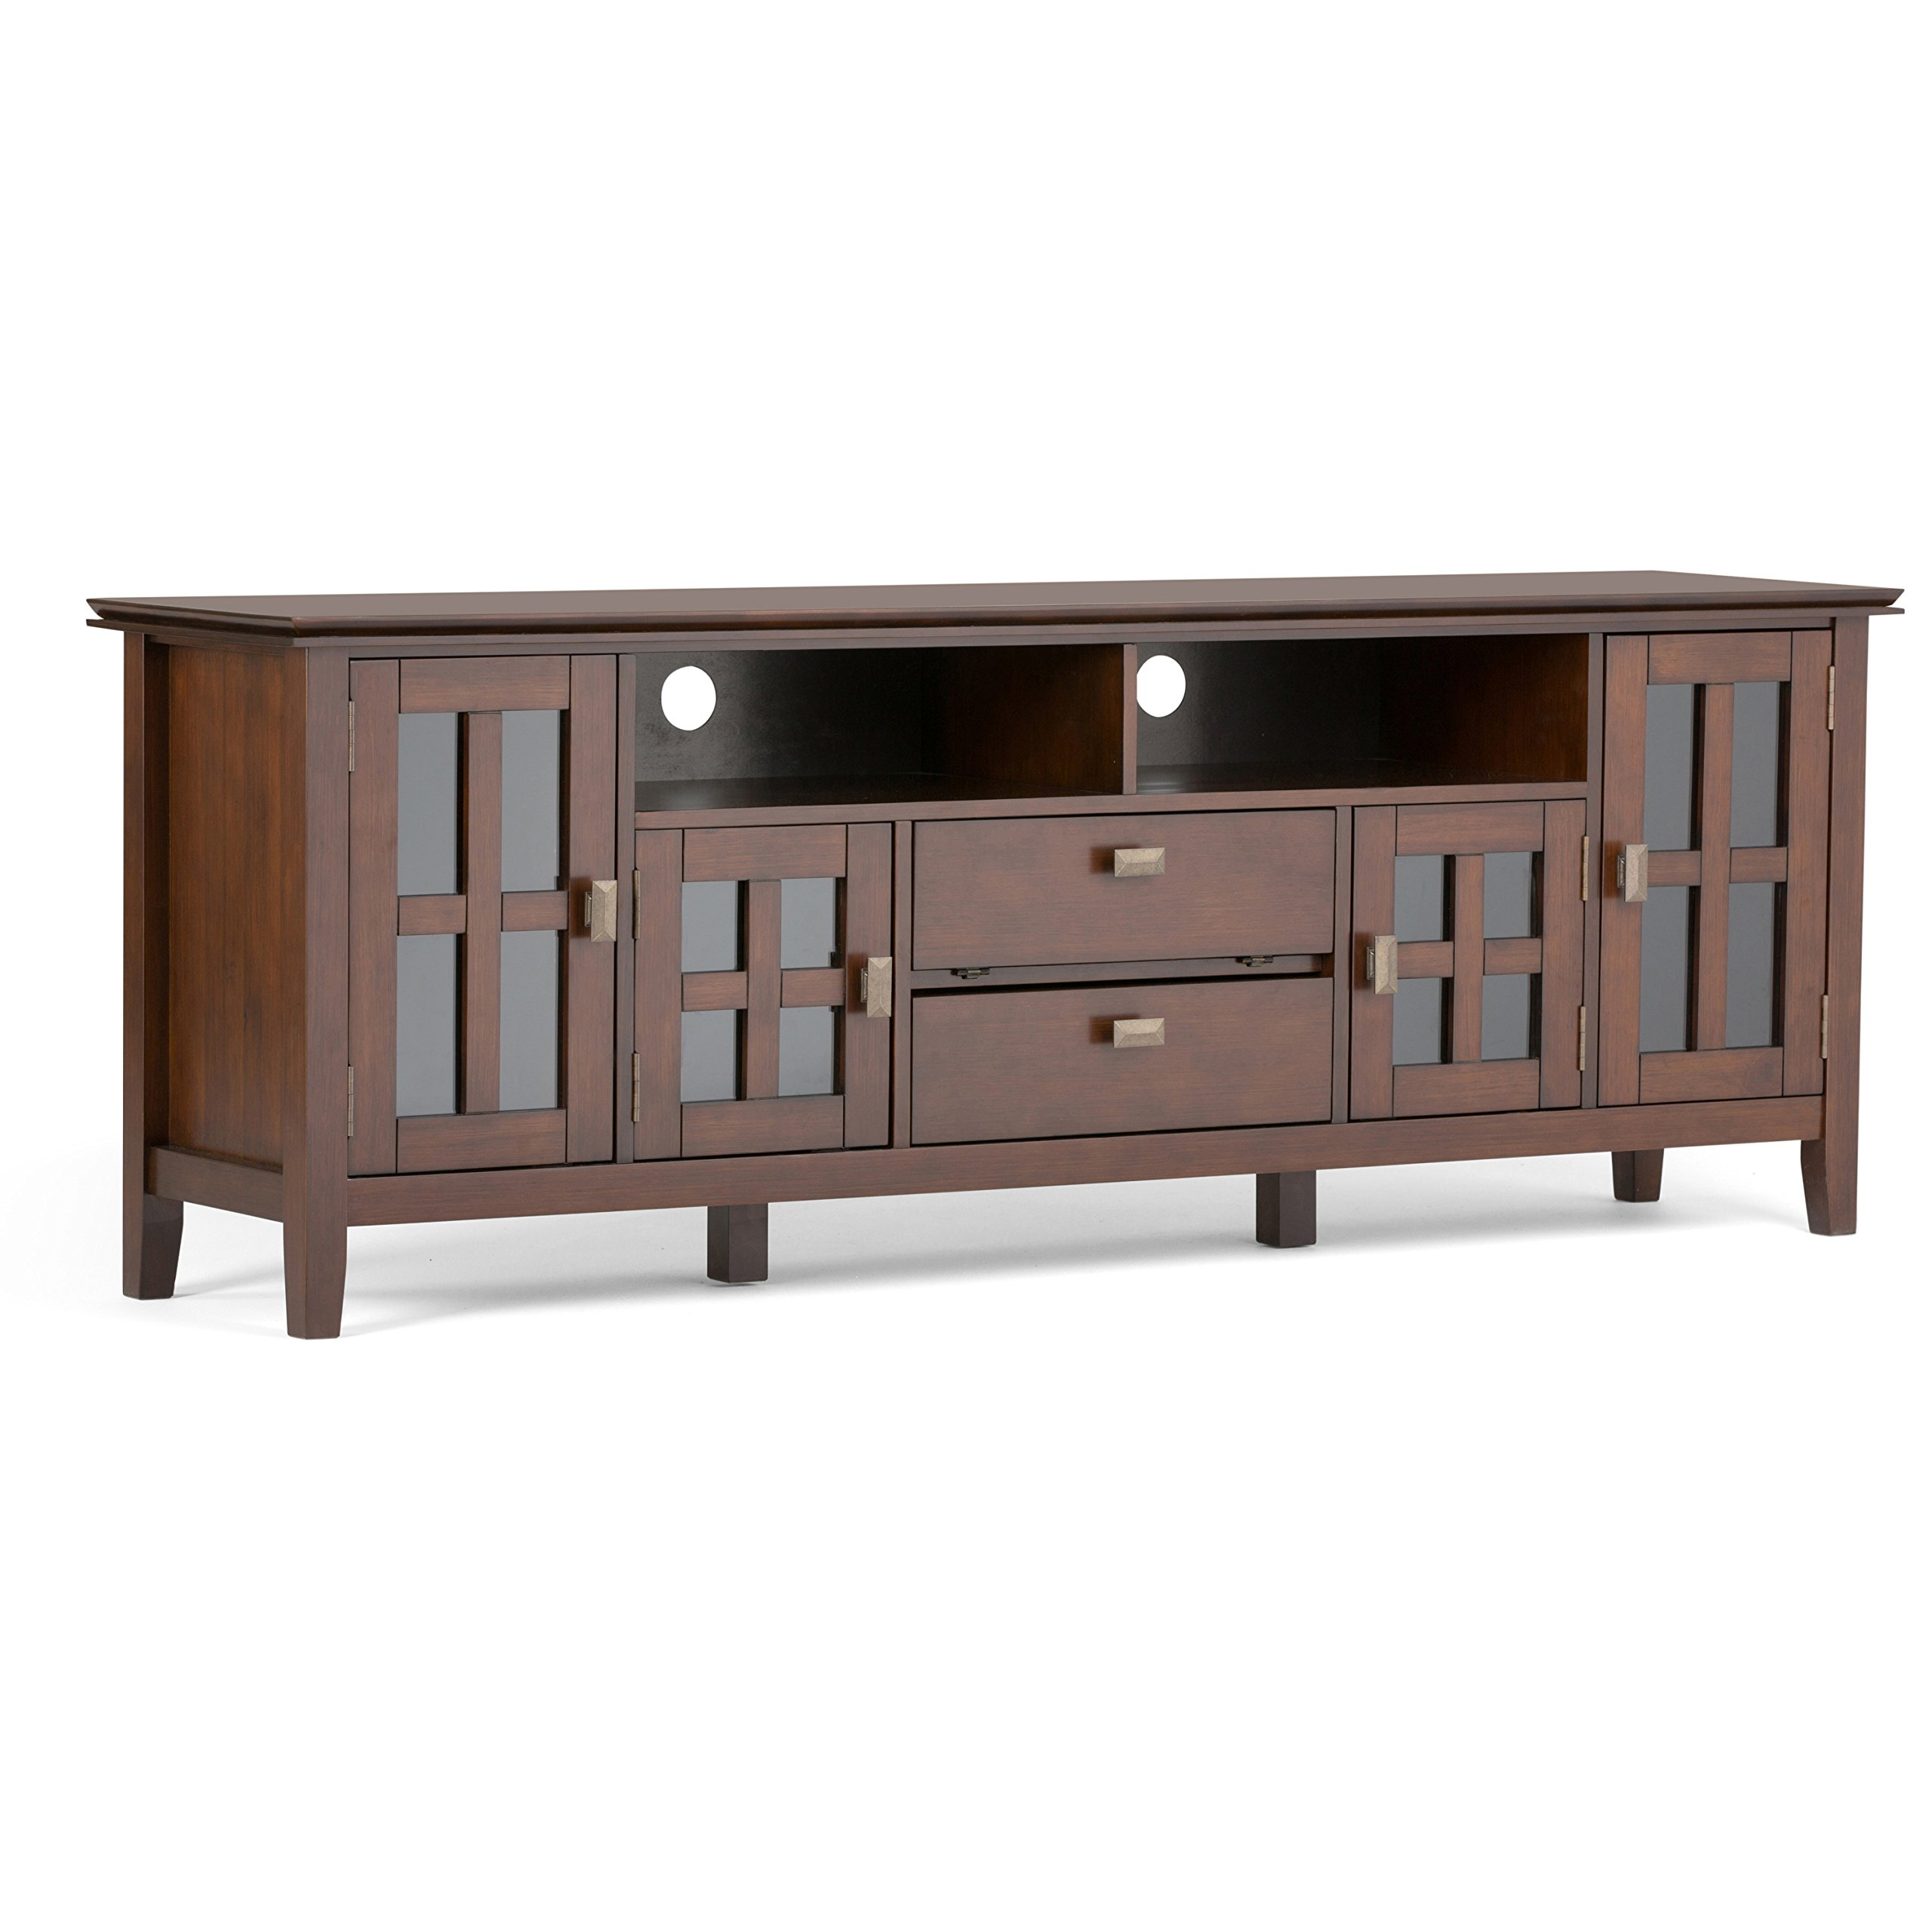 Simpli Home Artisan Solid Wood Wide TV Media Stand for TVs up to 80'', Medium Auburn Brown